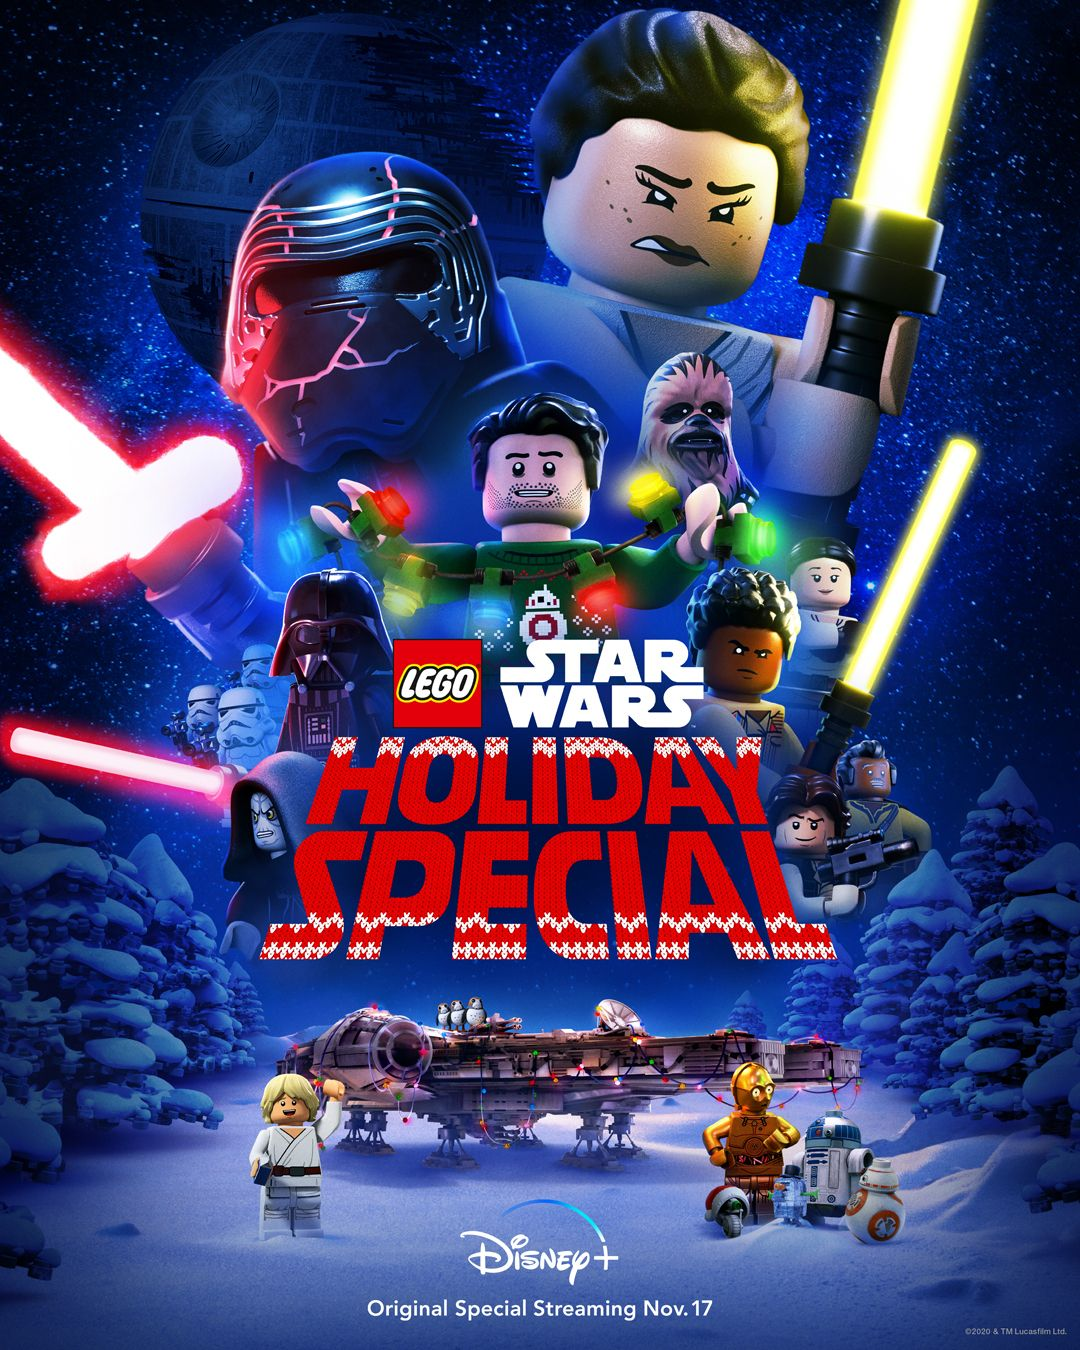 Lego Star Wars Holiday Special Coming To Disney Nov 17th Star Wars Holiday Special Lego Star Wars Star Wars Christmas